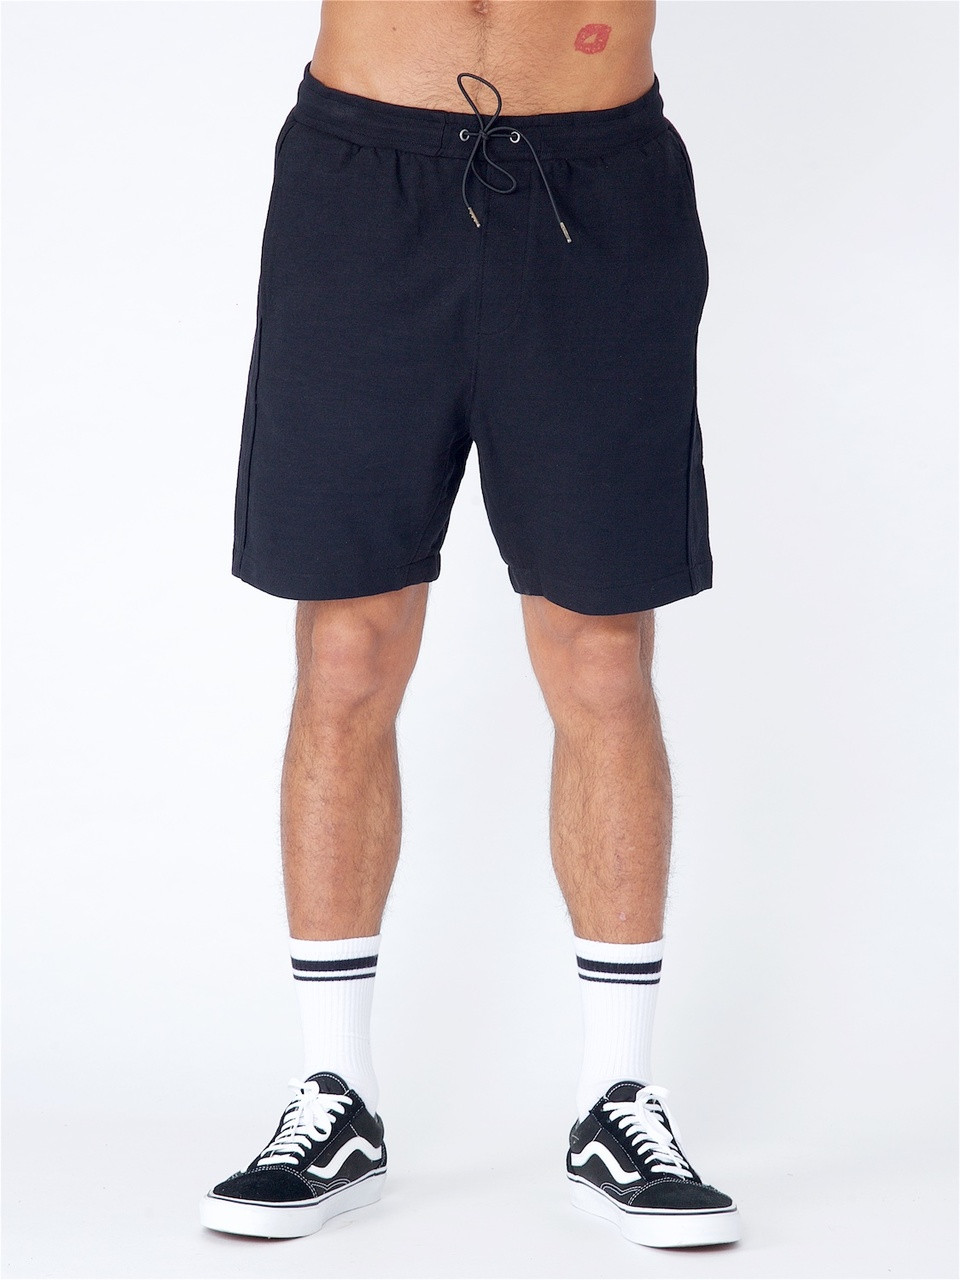 Black Sweat Short Whit Heavy Enzyme Wash & Piping Detail